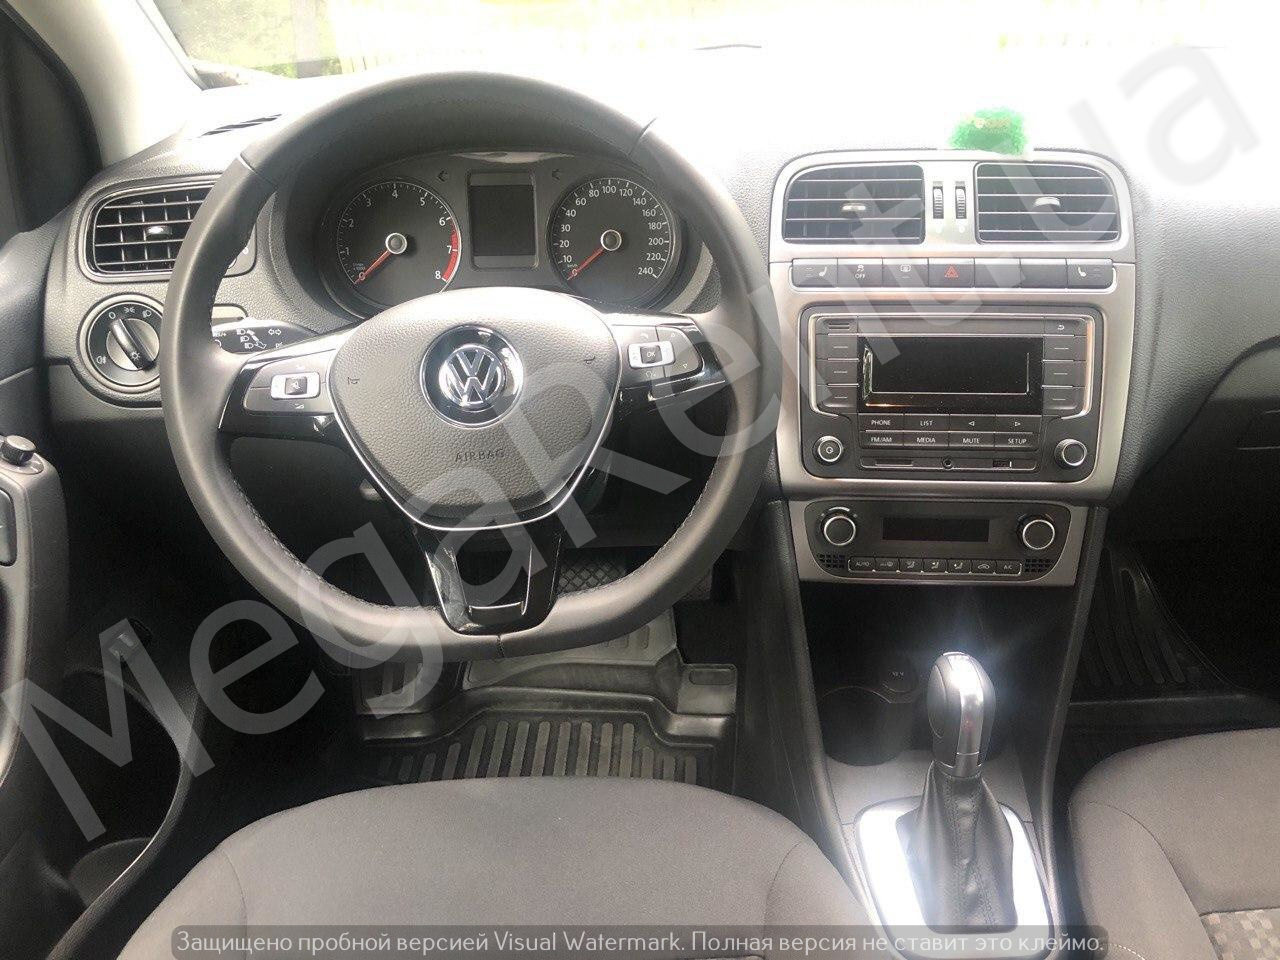 Car rental Volkswagen Polo sedan 2016 in Kyiv - photo 6